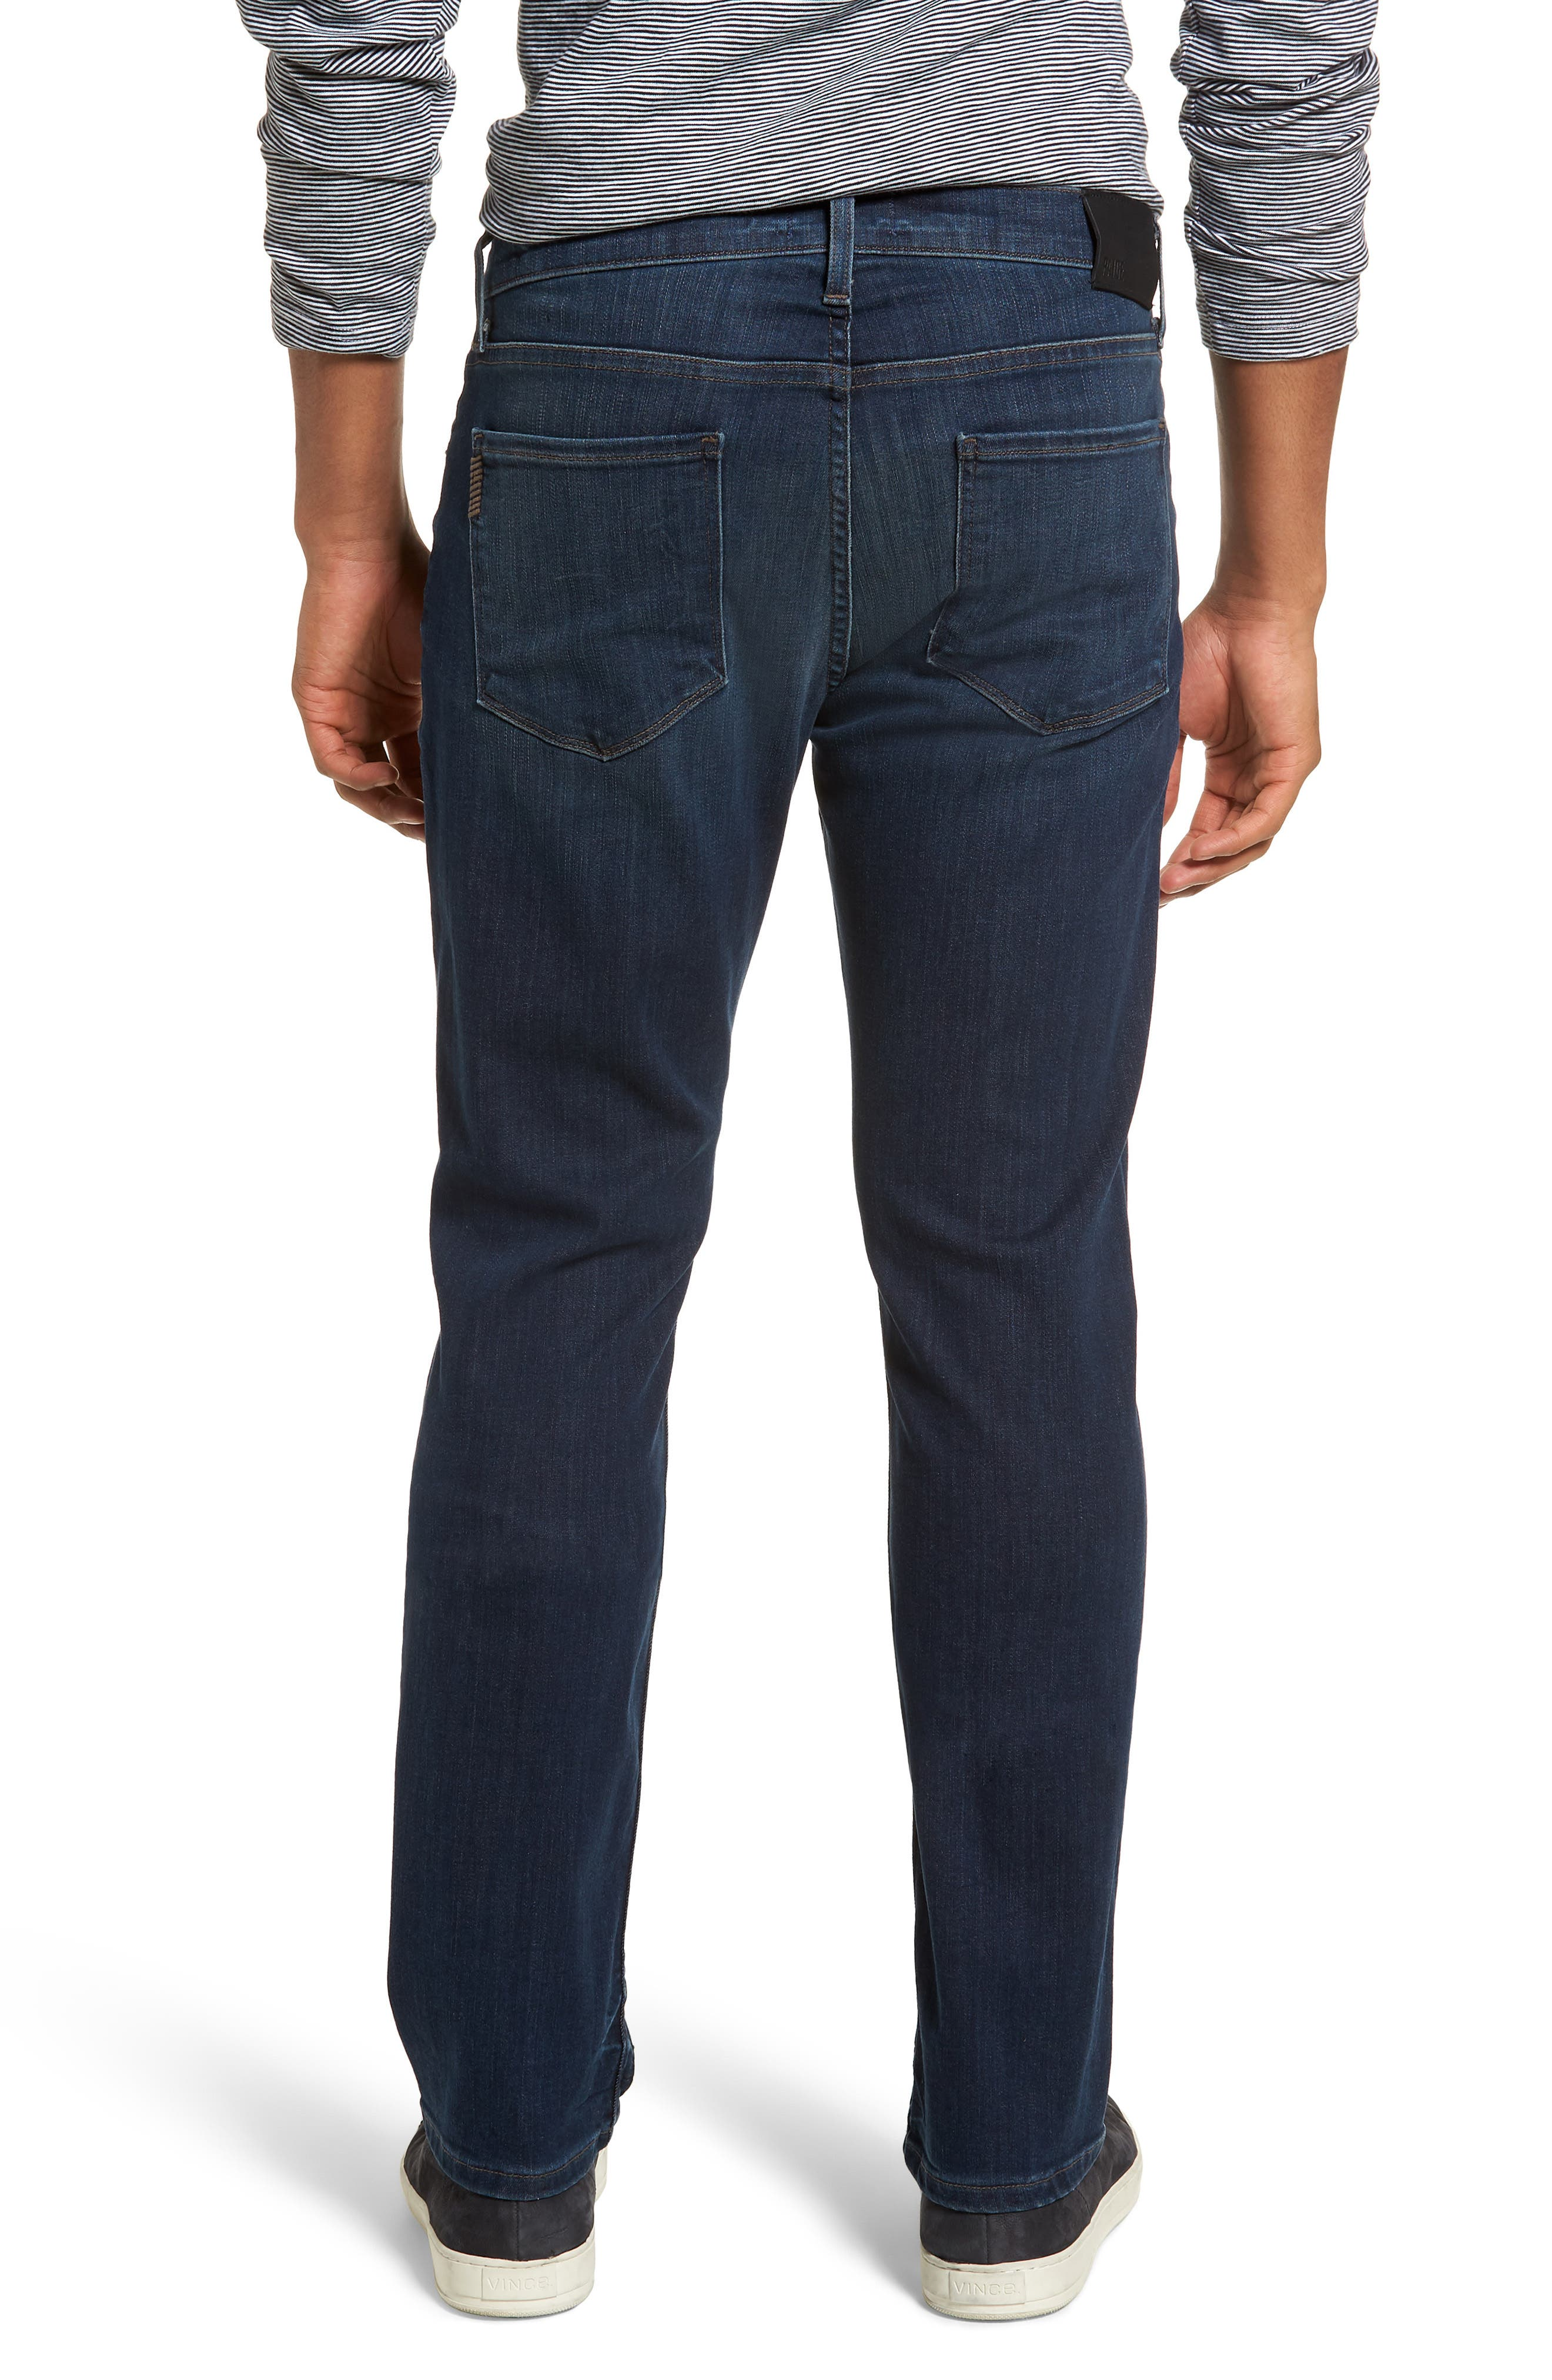 Transcend - Federal Slim Straight Leg Jeans,                             Alternate thumbnail 2, color,                             FREEMAN